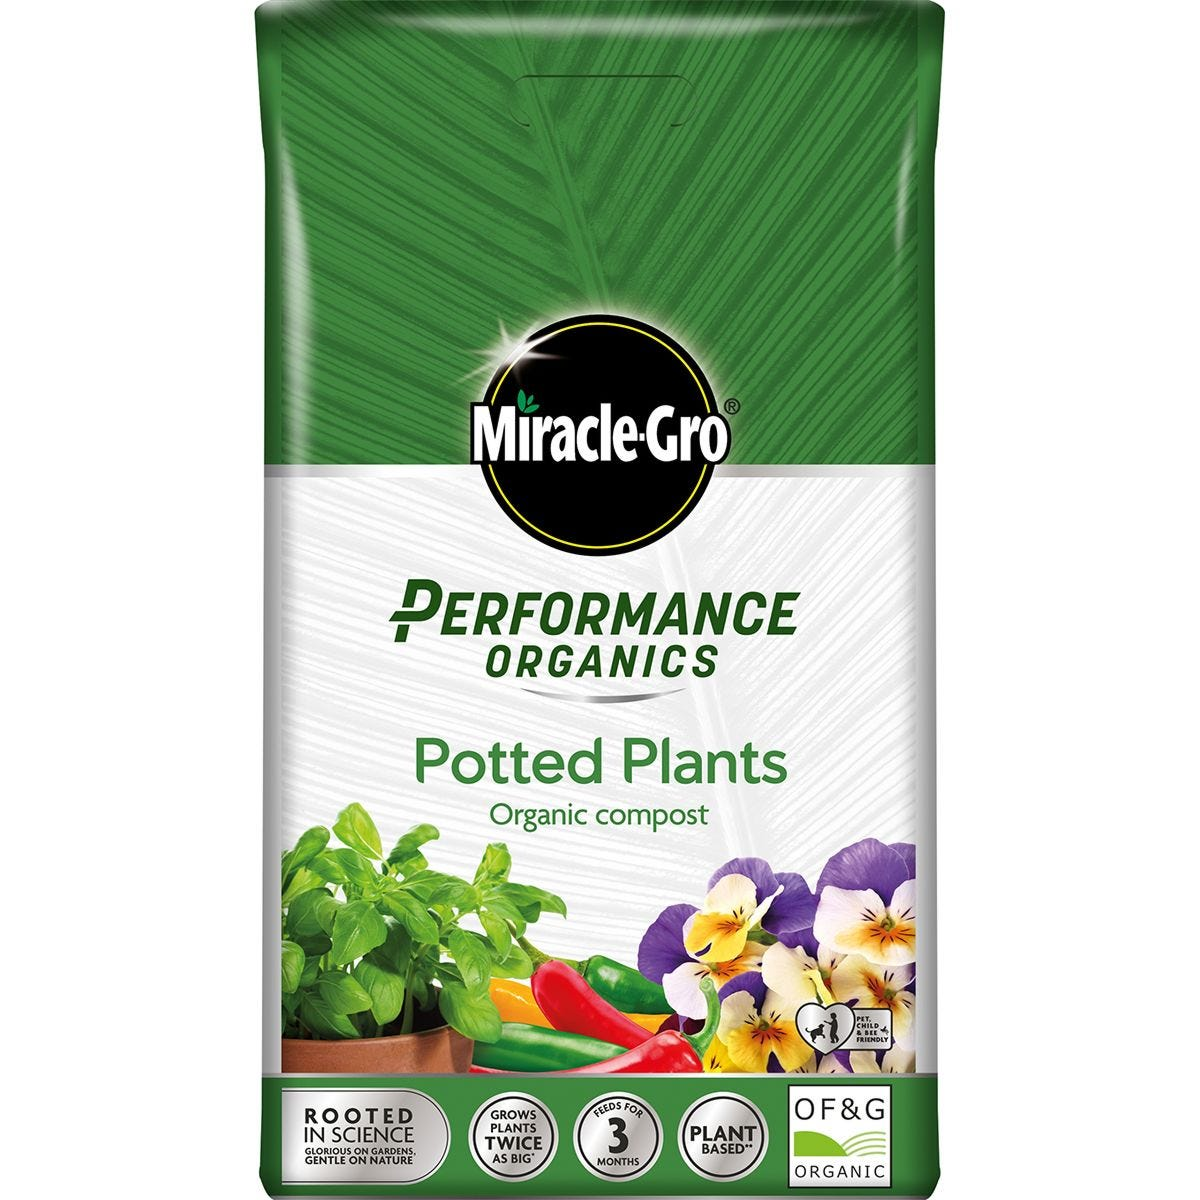 Miracle-Gro Performance Organics All Purpose Potted Plants Compost - 20L